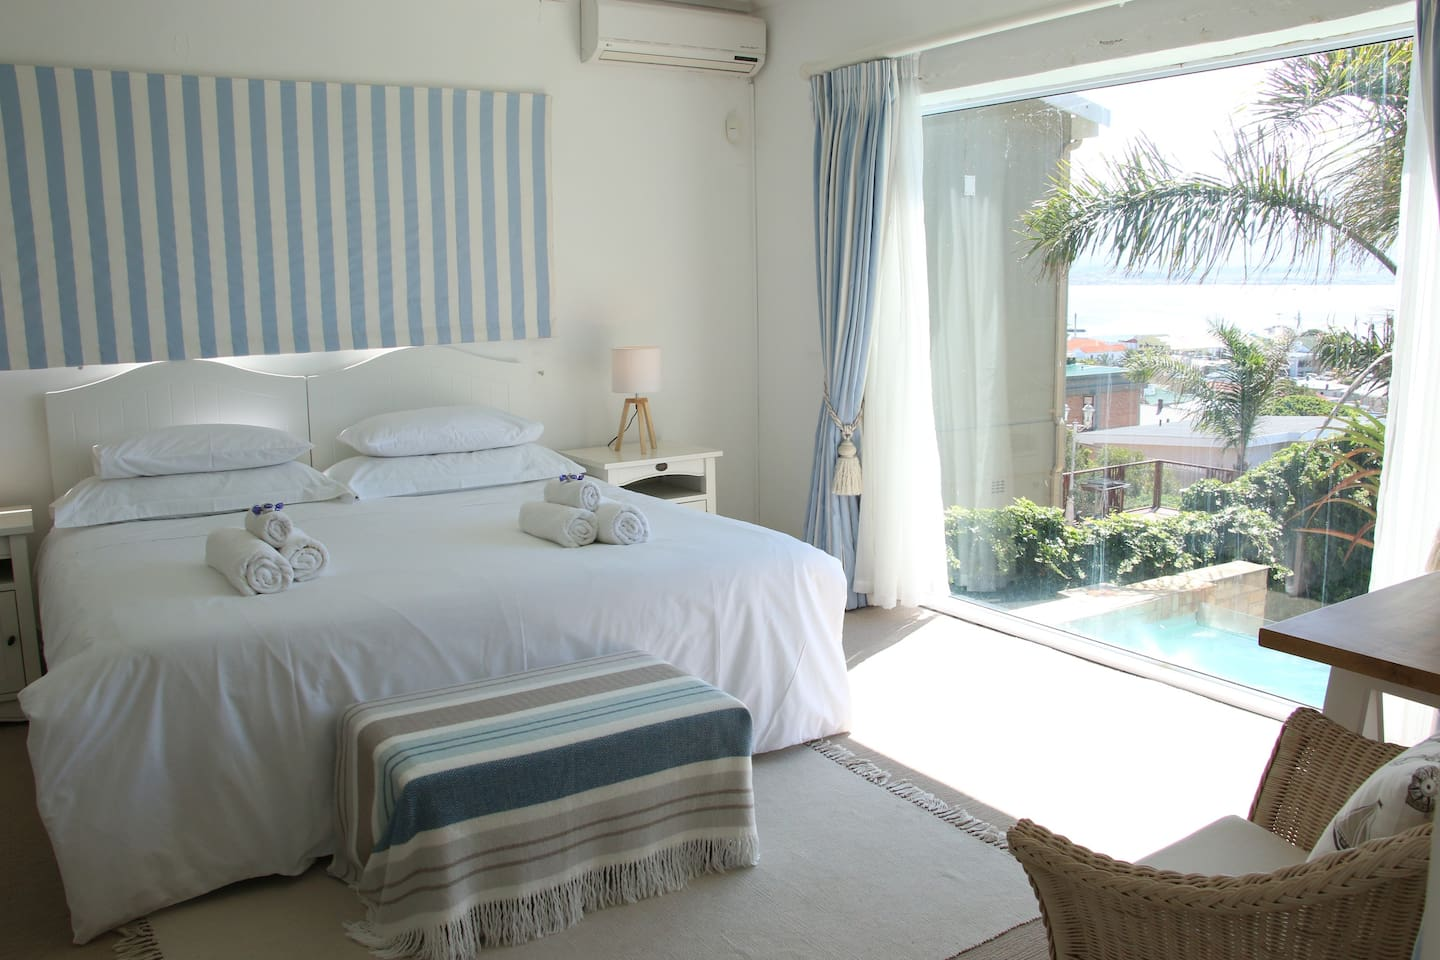 Spacious room with king size bed and full en-suite bathroom